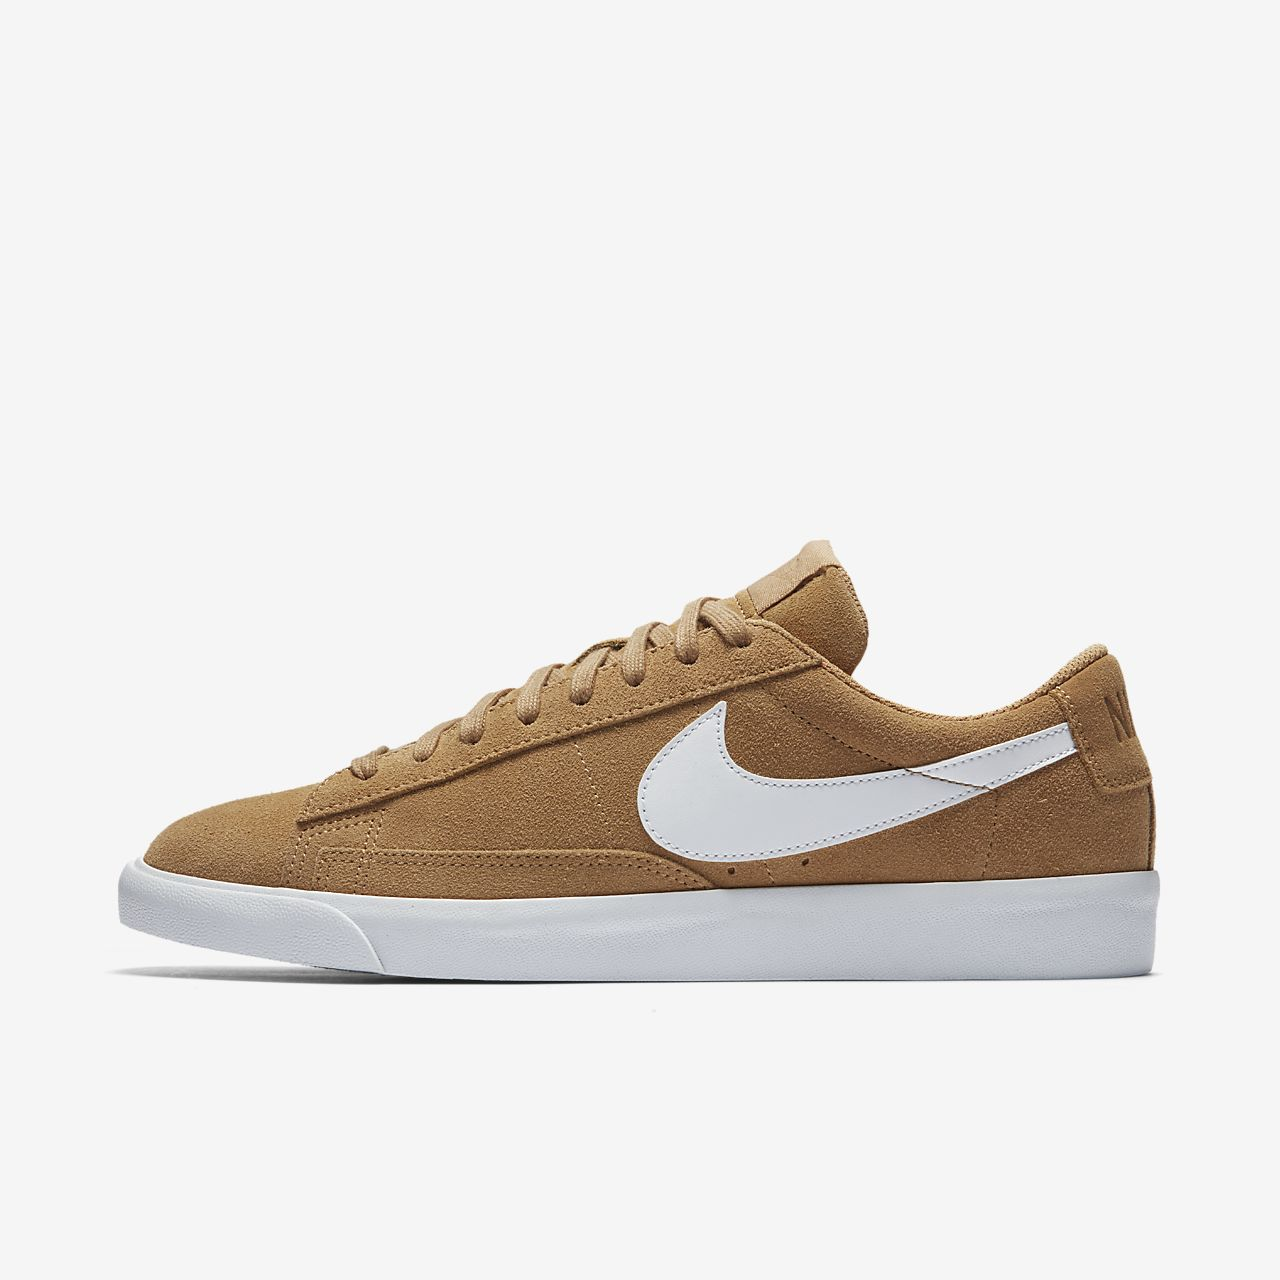 ... Nike Blazer Low Men's Shoe